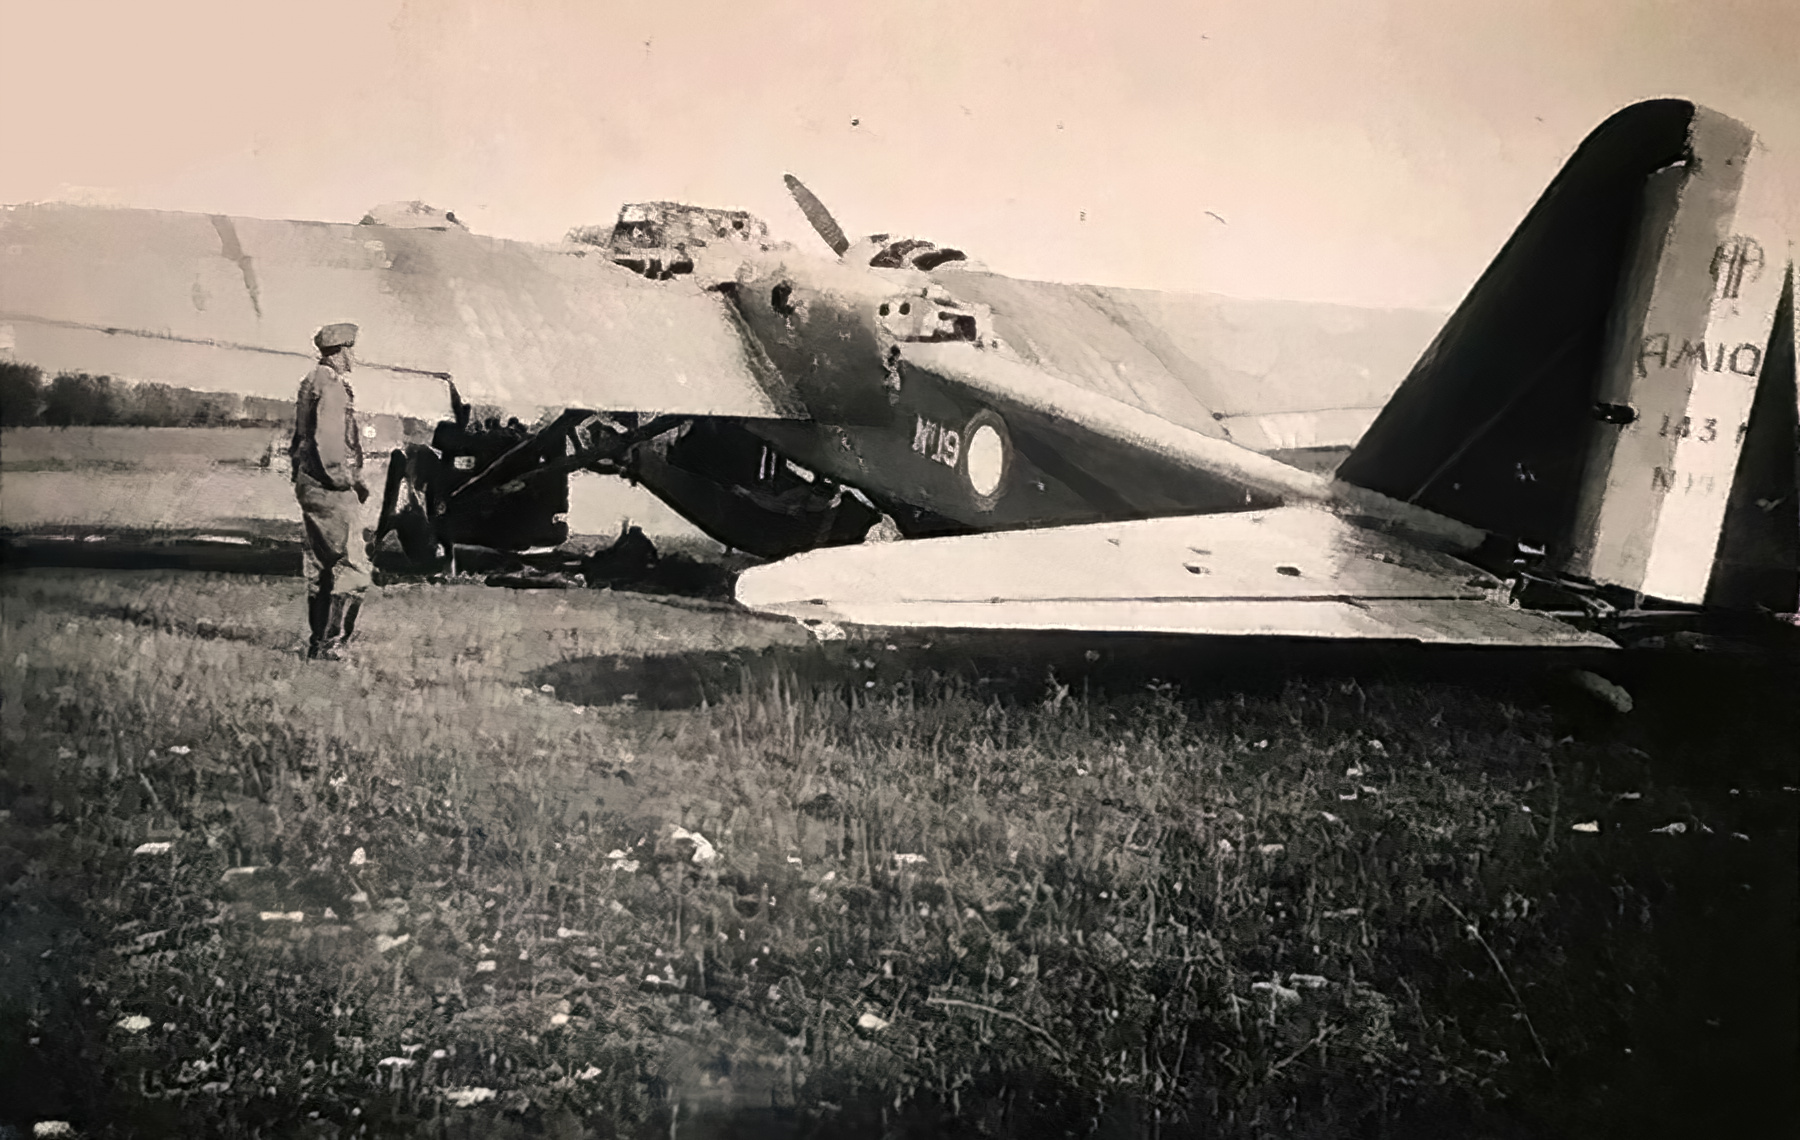 French Airforce Amiot 143 destroyed whilst grounded battle of France May Jun 1940 ebay 02